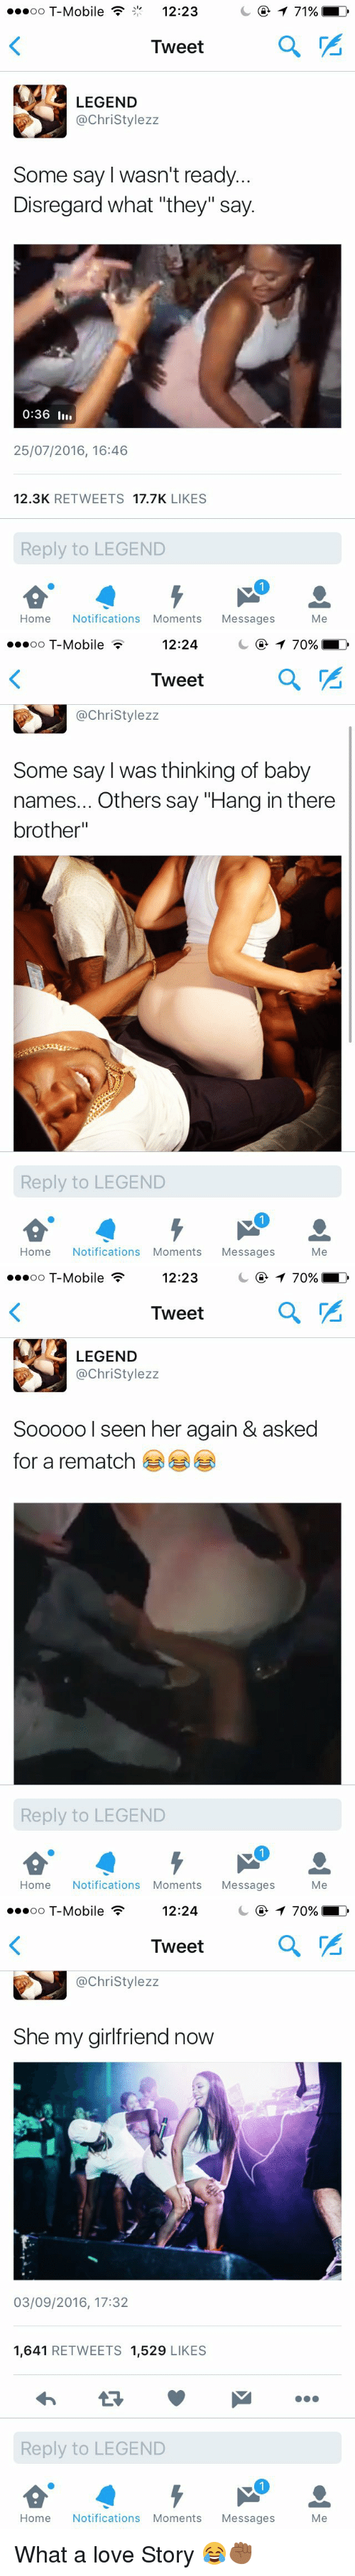 """Baby Name: oo T-Mobile 12:23  T 71%  Tweet  LEGEND  @Christy lezz  Some say wasn't ready.  Disregard what """"they"""" say.  0:36 III.  25/07/2016, 16:46  12.3K  RETWEETS  17.7K  LIKES  Reply to LEGEND  Home Notifications Moments Messages  Me   70%-  12:24  oo T-Mobile  Tweet  @Christy lezz  Some say was thinking of baby  names... Others say """"Hang inthere  brother""""  Reply to LEGEND  Home Notifications Moments Messages  Me   3 12:23  70%  oo T-Mobile  Tweet  LEGEND  @Christy lezz  Sooooo I seen her again & asked  for a rematch  Reply to LEGEND  Home Notifications Moments Messages  Me   3 12:24  70%-  oo T-Mobile  Tweet  Christylezz  She my girlfriend now  03/09/2016, 17:32  1.641  RETWEETS 1,529  LIKES  Reply to LEGEND  Home Notifications Moments Messages  Me What a love Story 😂✊🏾"""